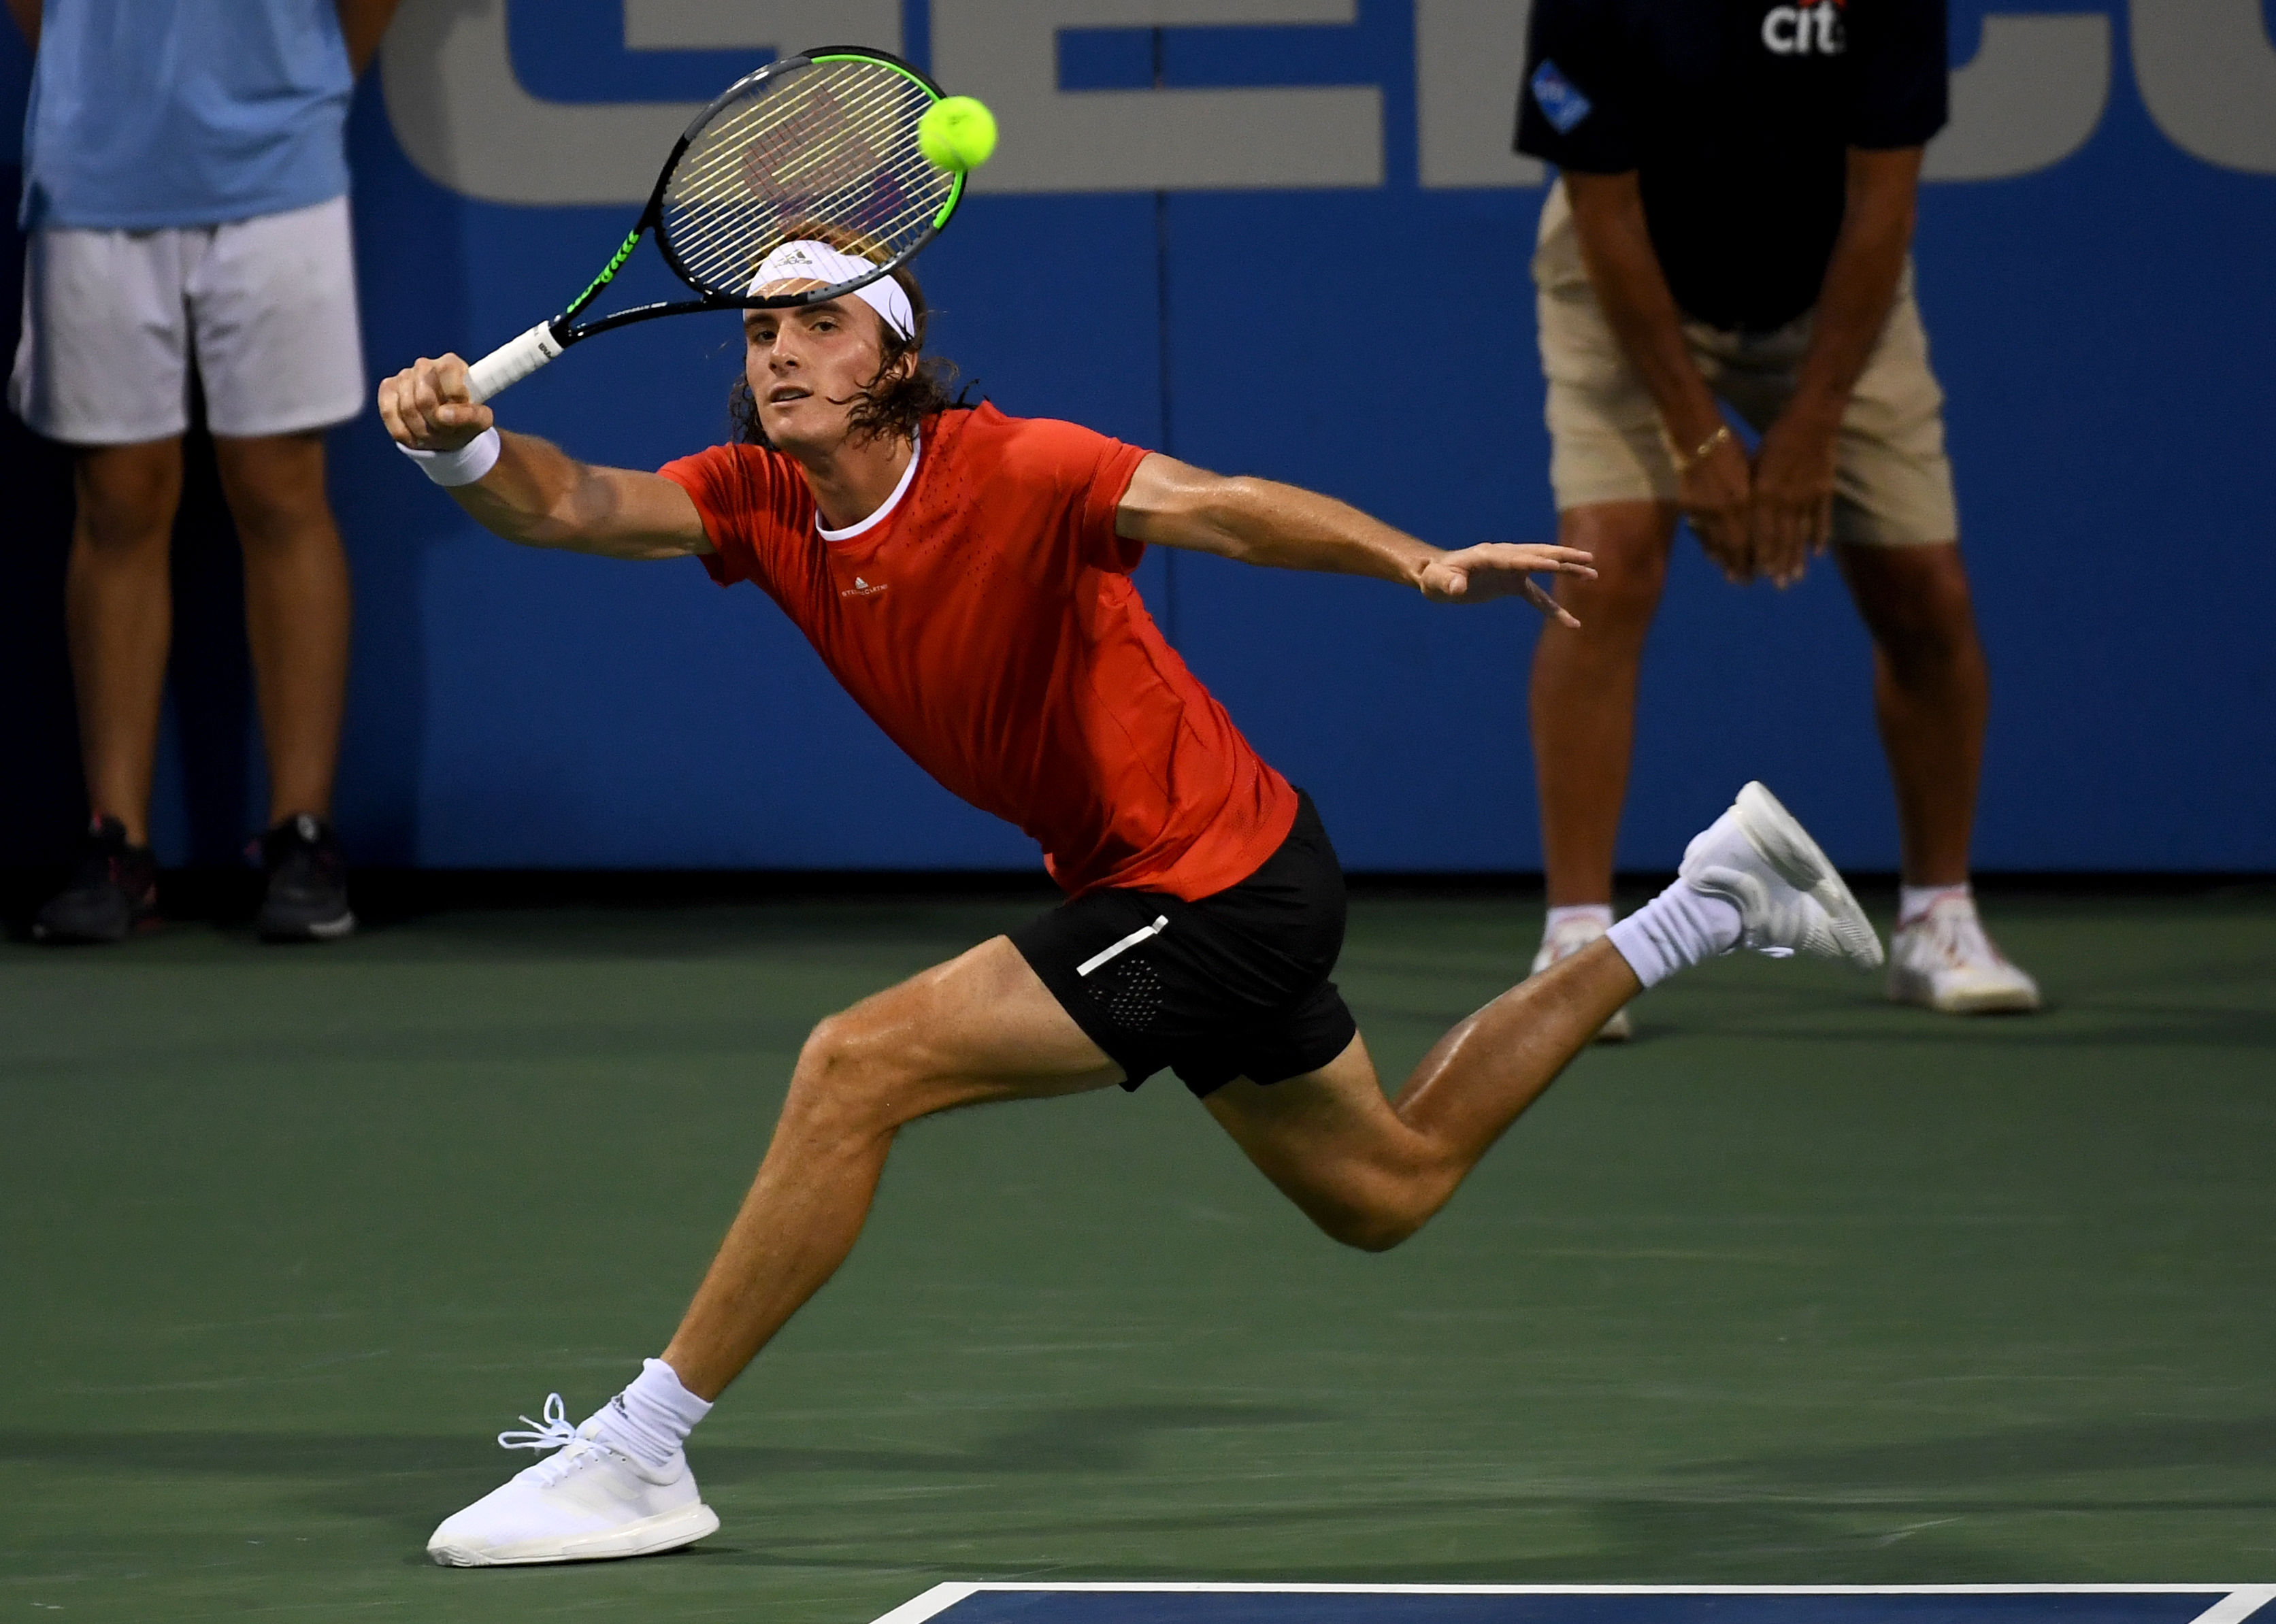 Top Seeded Stefanos Tsitsipas Weathers A Frustrating Match Advances To Citi Open Quarterfinals The Washington Post